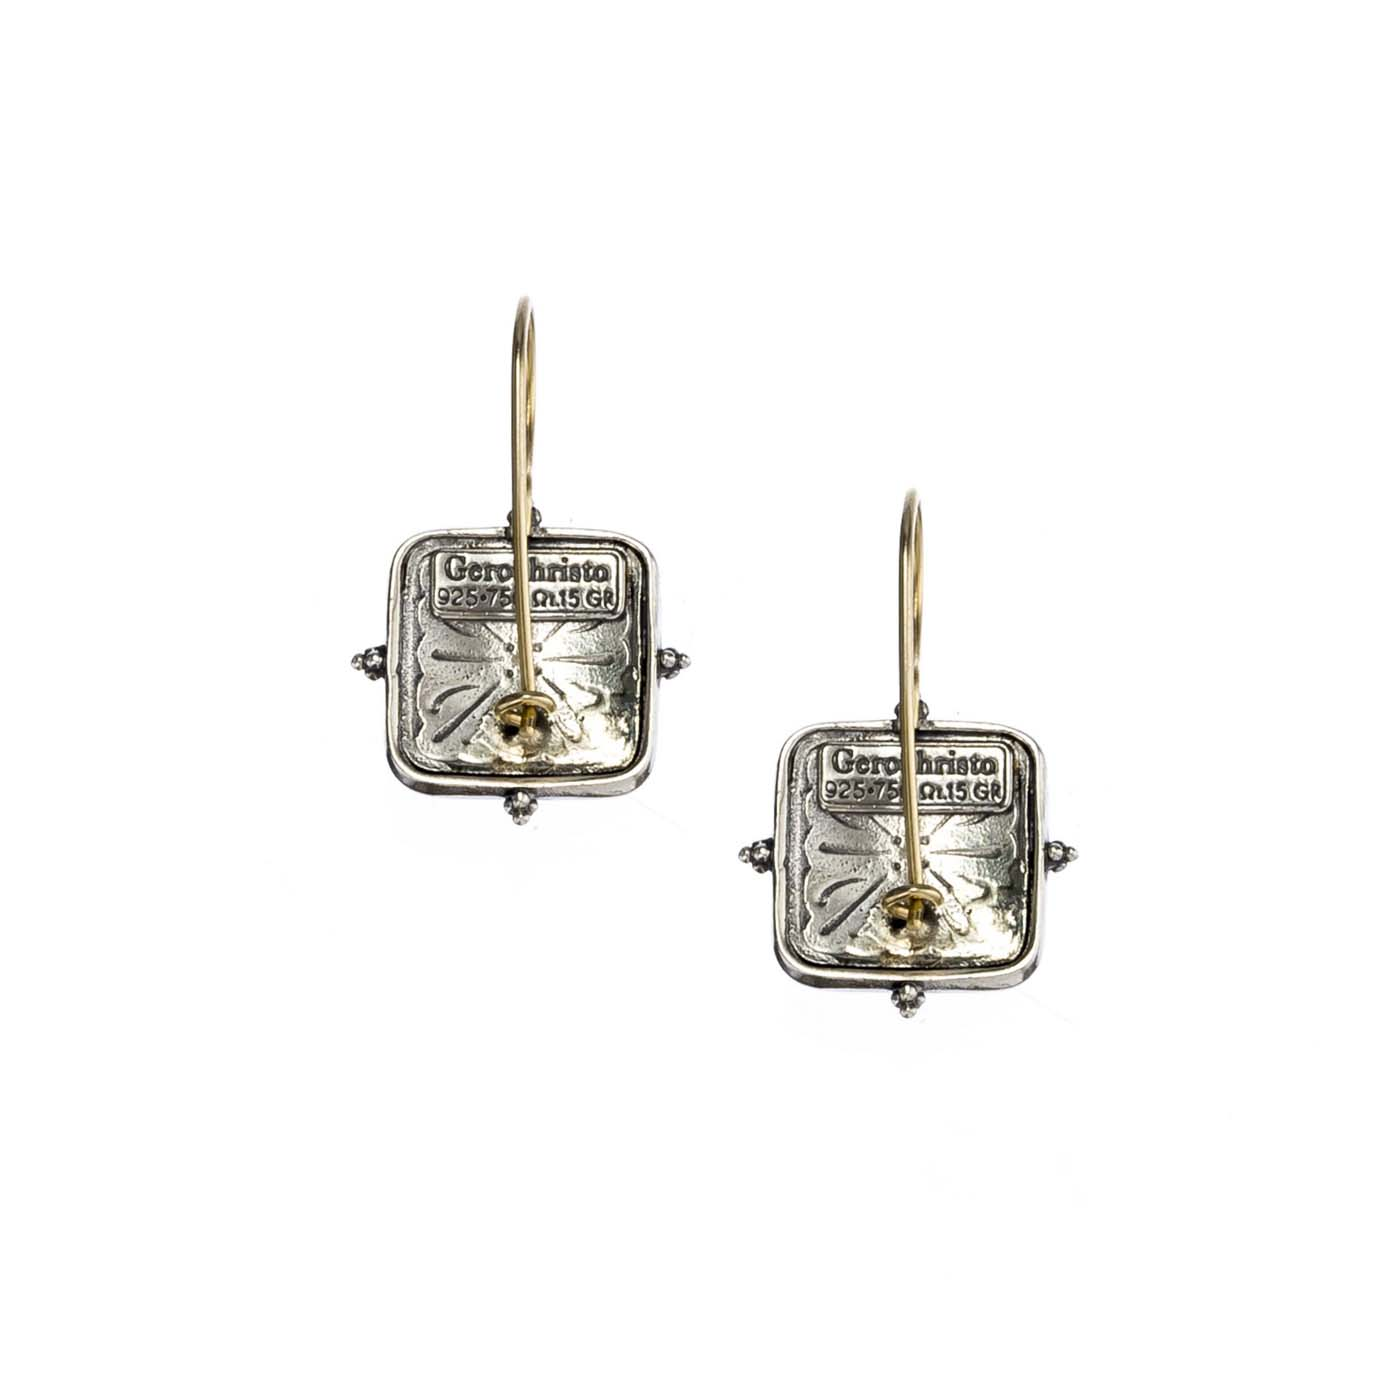 Cyclades earrings in 18K Gold and Sterling silver